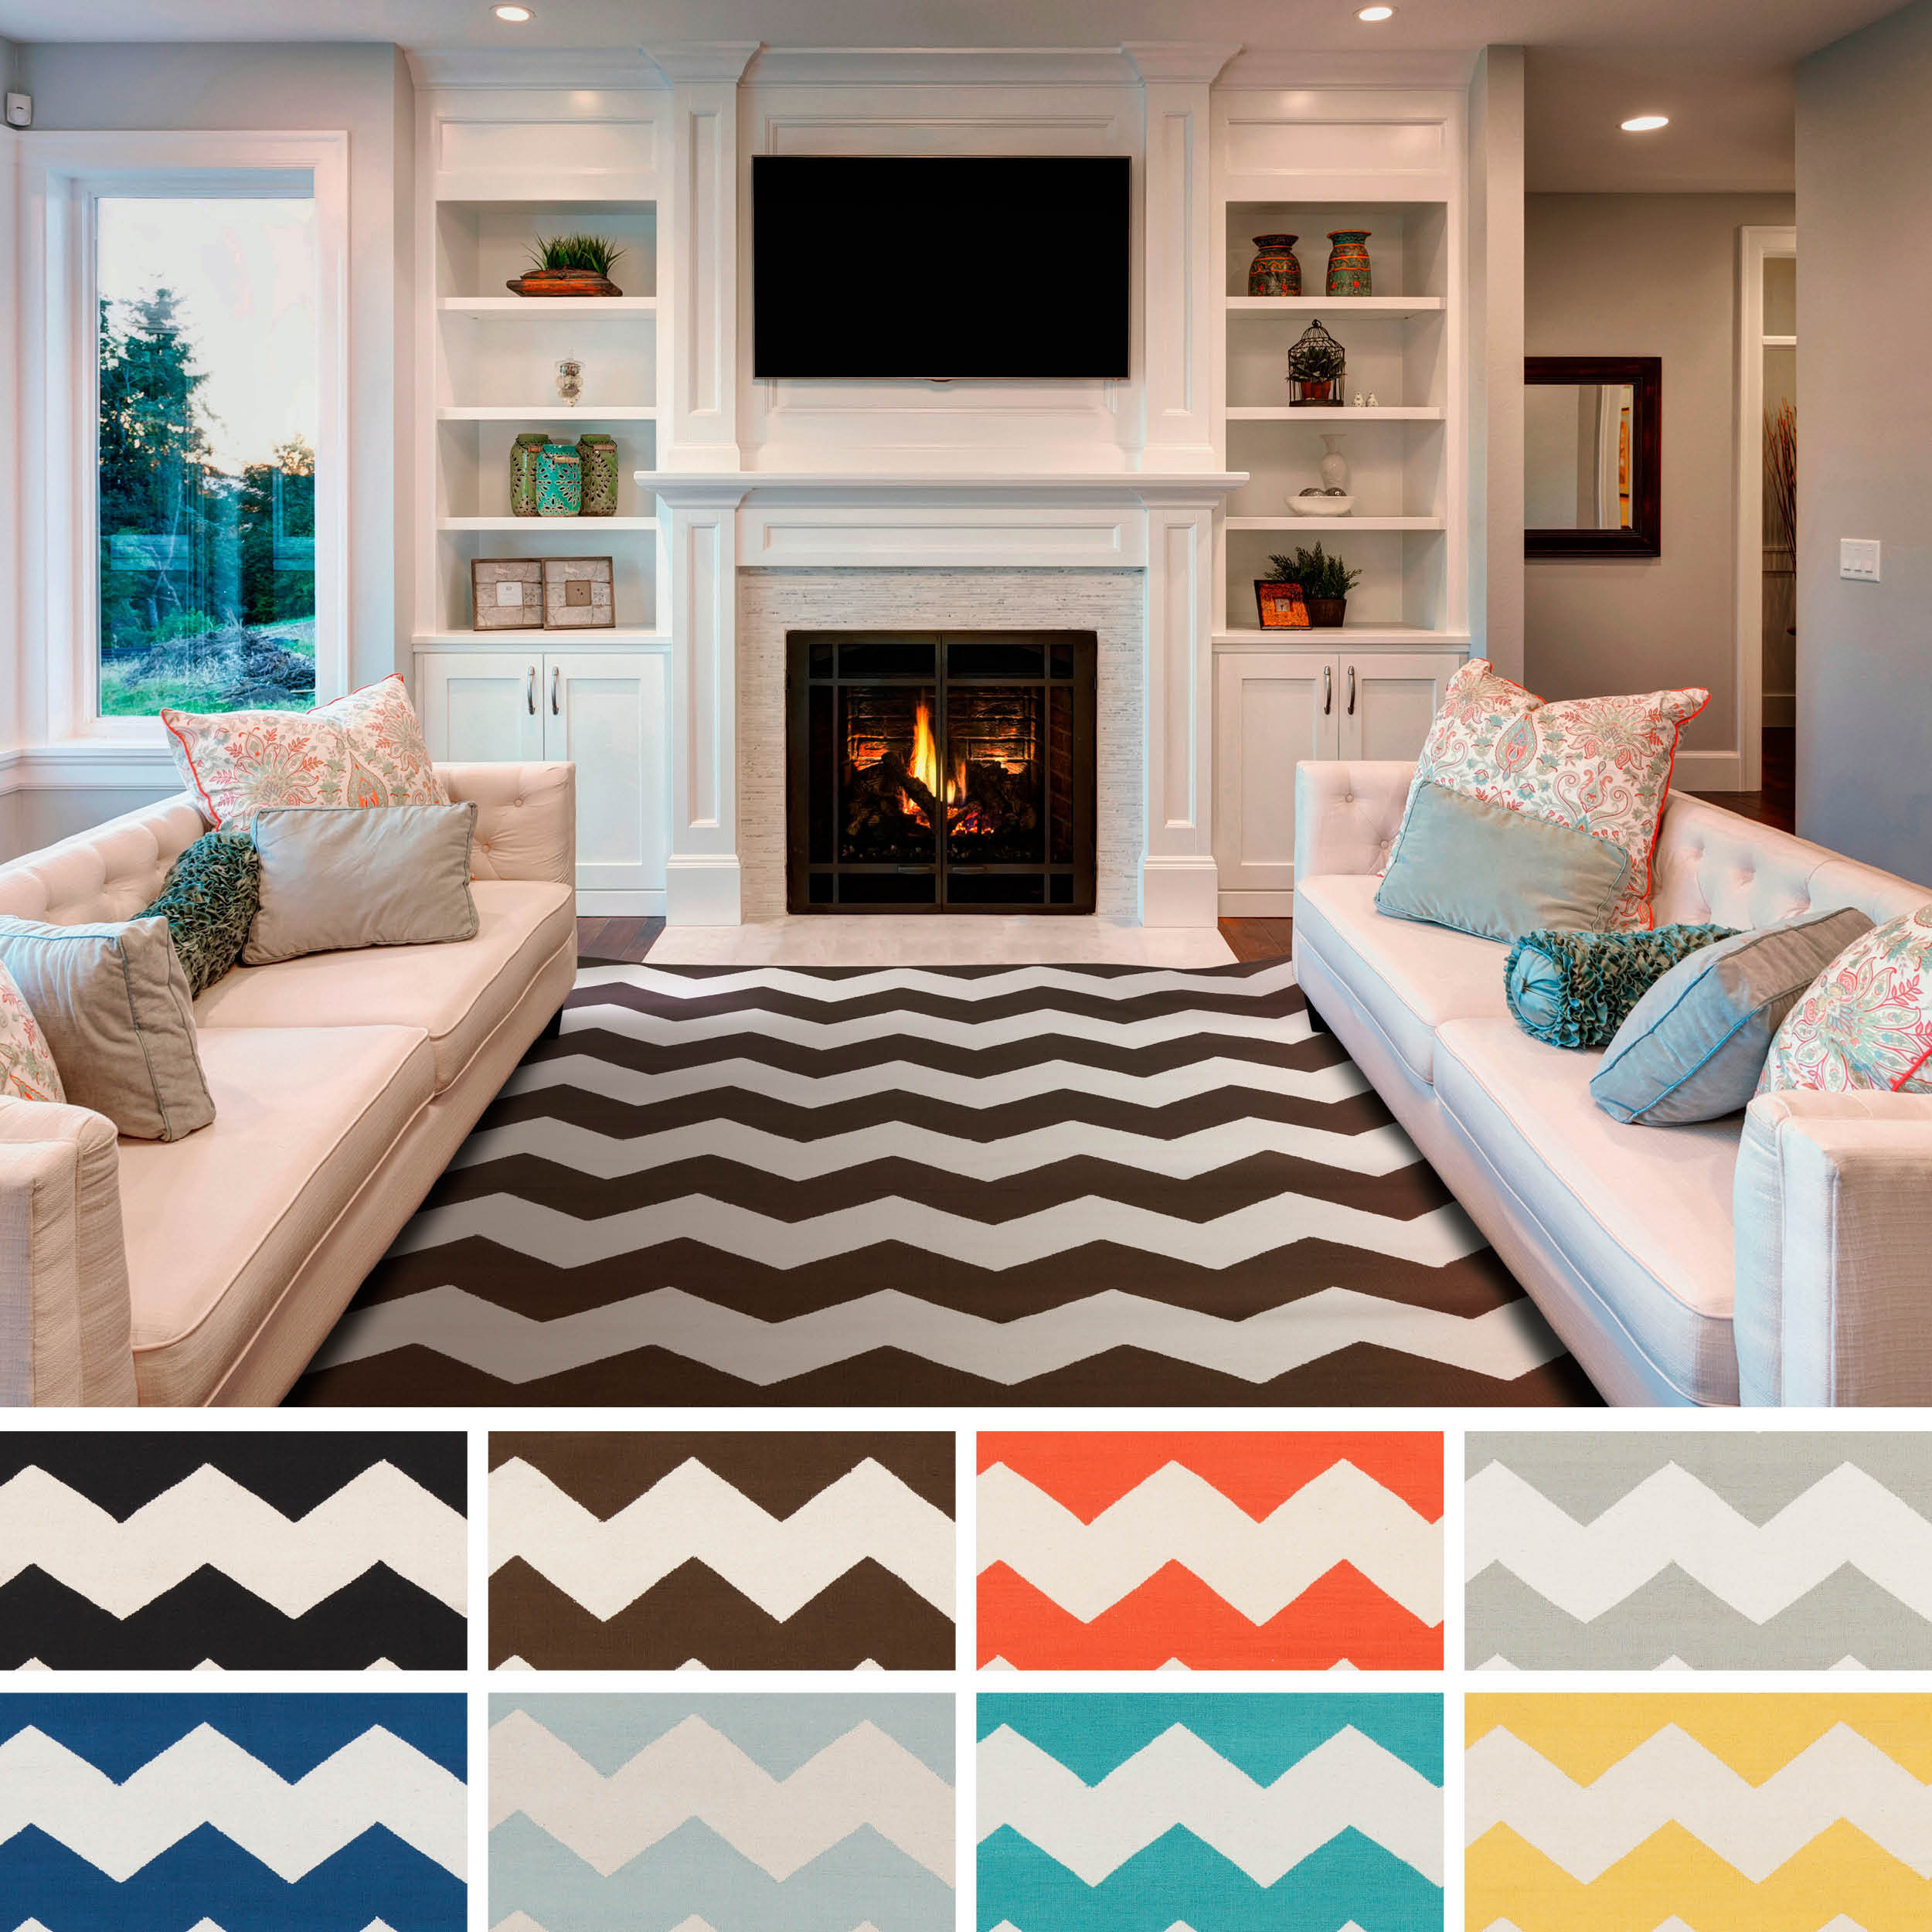 Yellow Chevron Outdoor Rug | Pottery Barn Chevron Rug | Chevron Rug